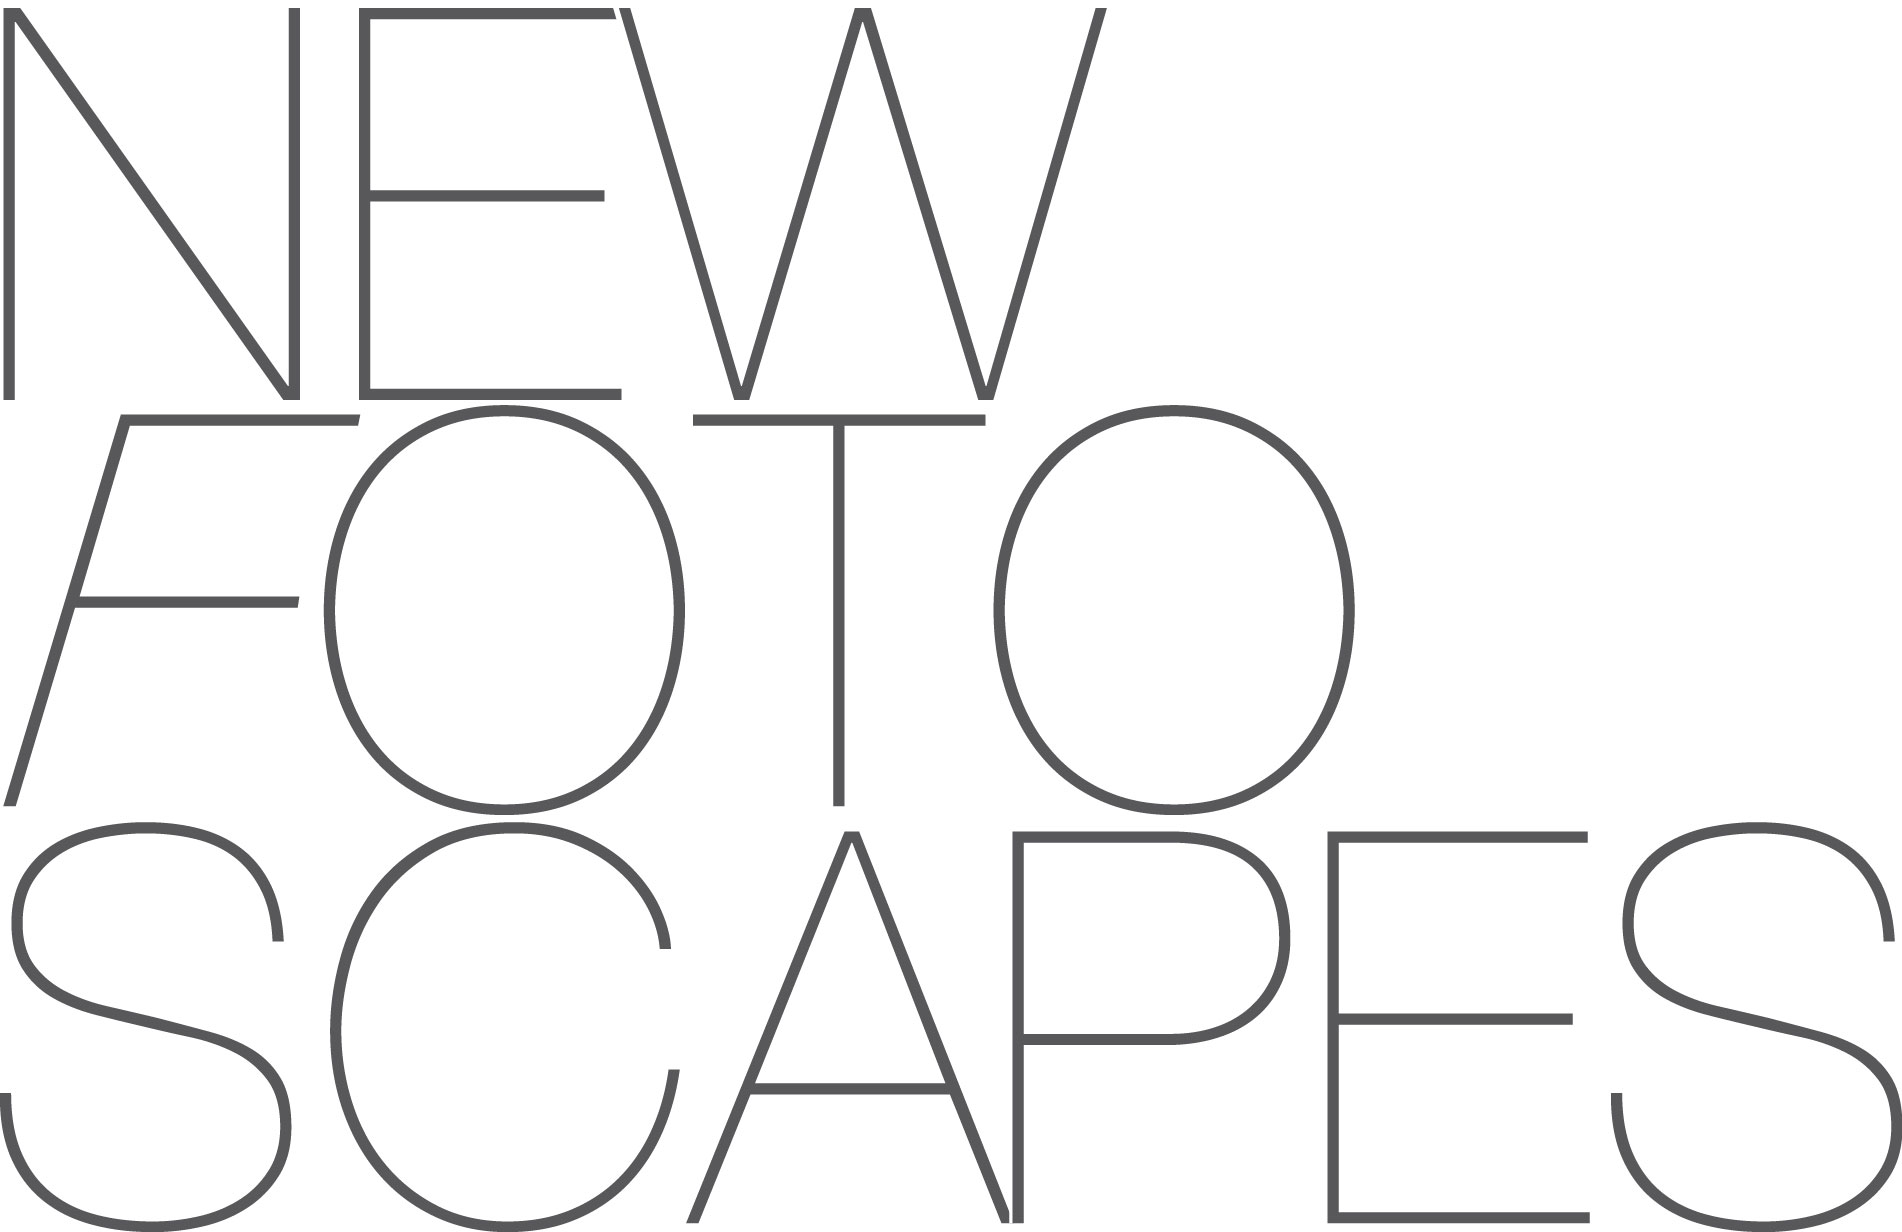 newfotoscapes_logo_block graphic Jan 2014